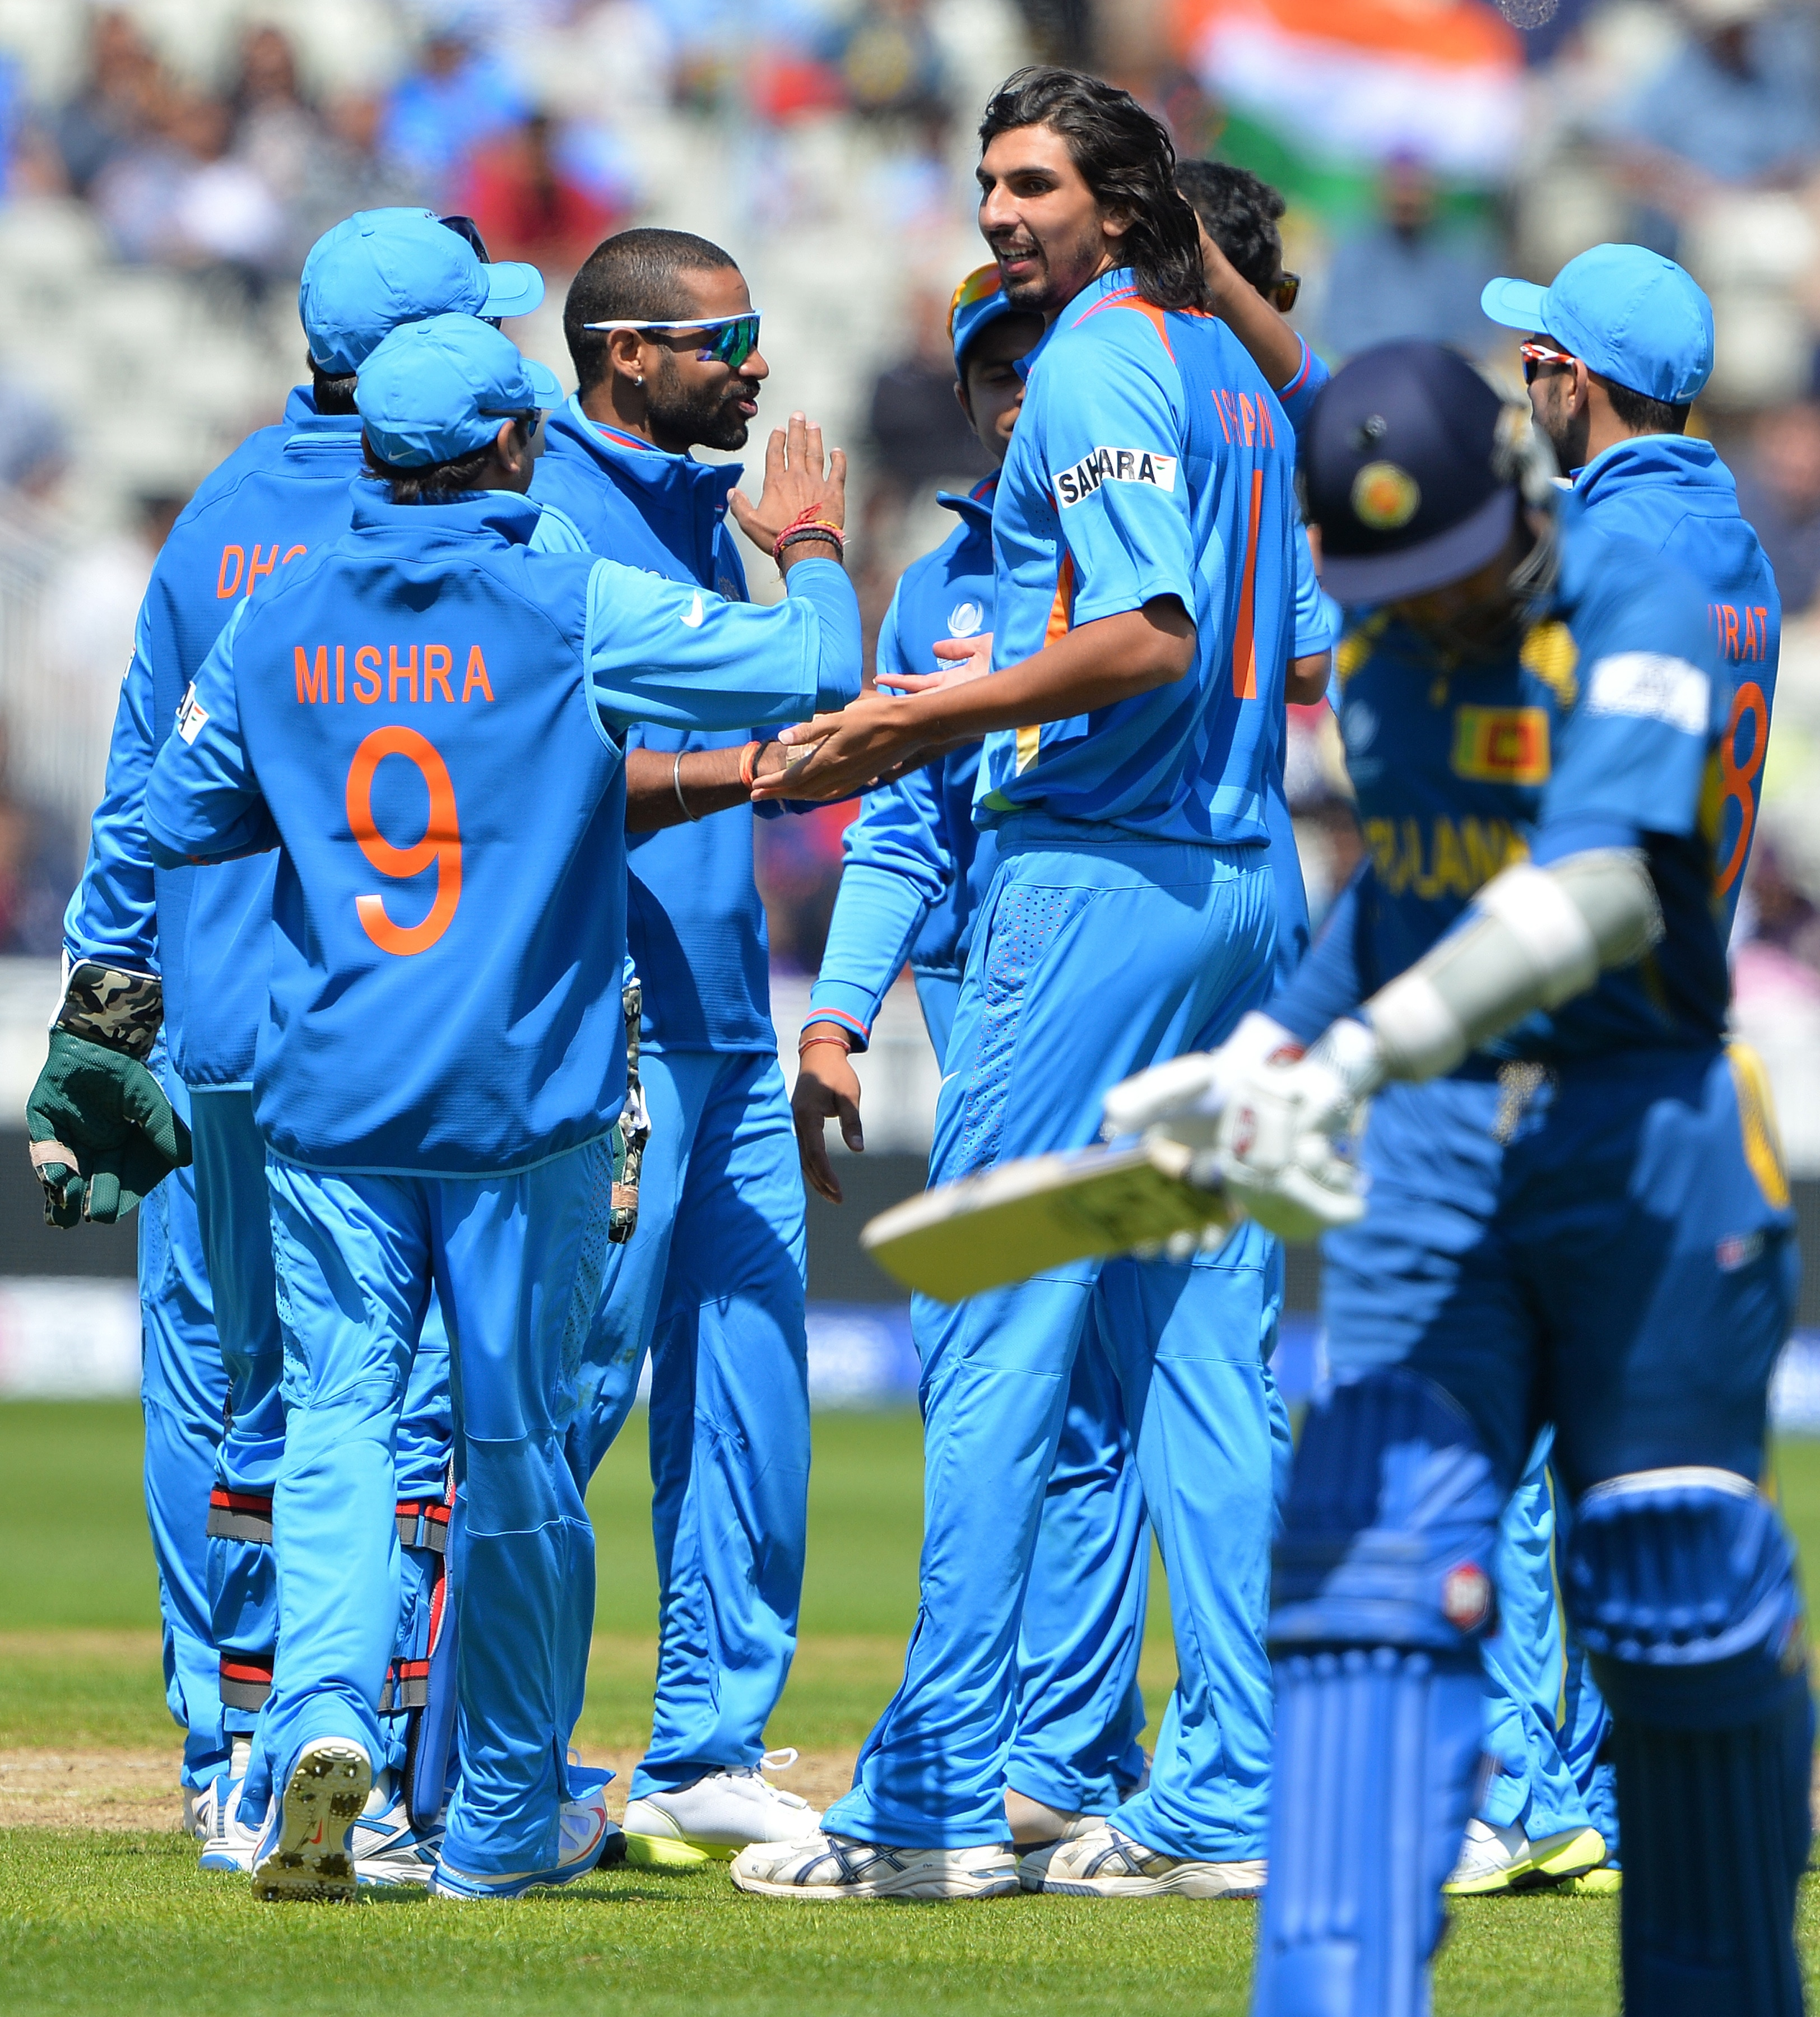 Ishant Sharma was the first Indian bowler to strike as his loose ball on the pads was uppishly flicked by Mahela Jayawardene to Irfan Pathan at short fine-leg.